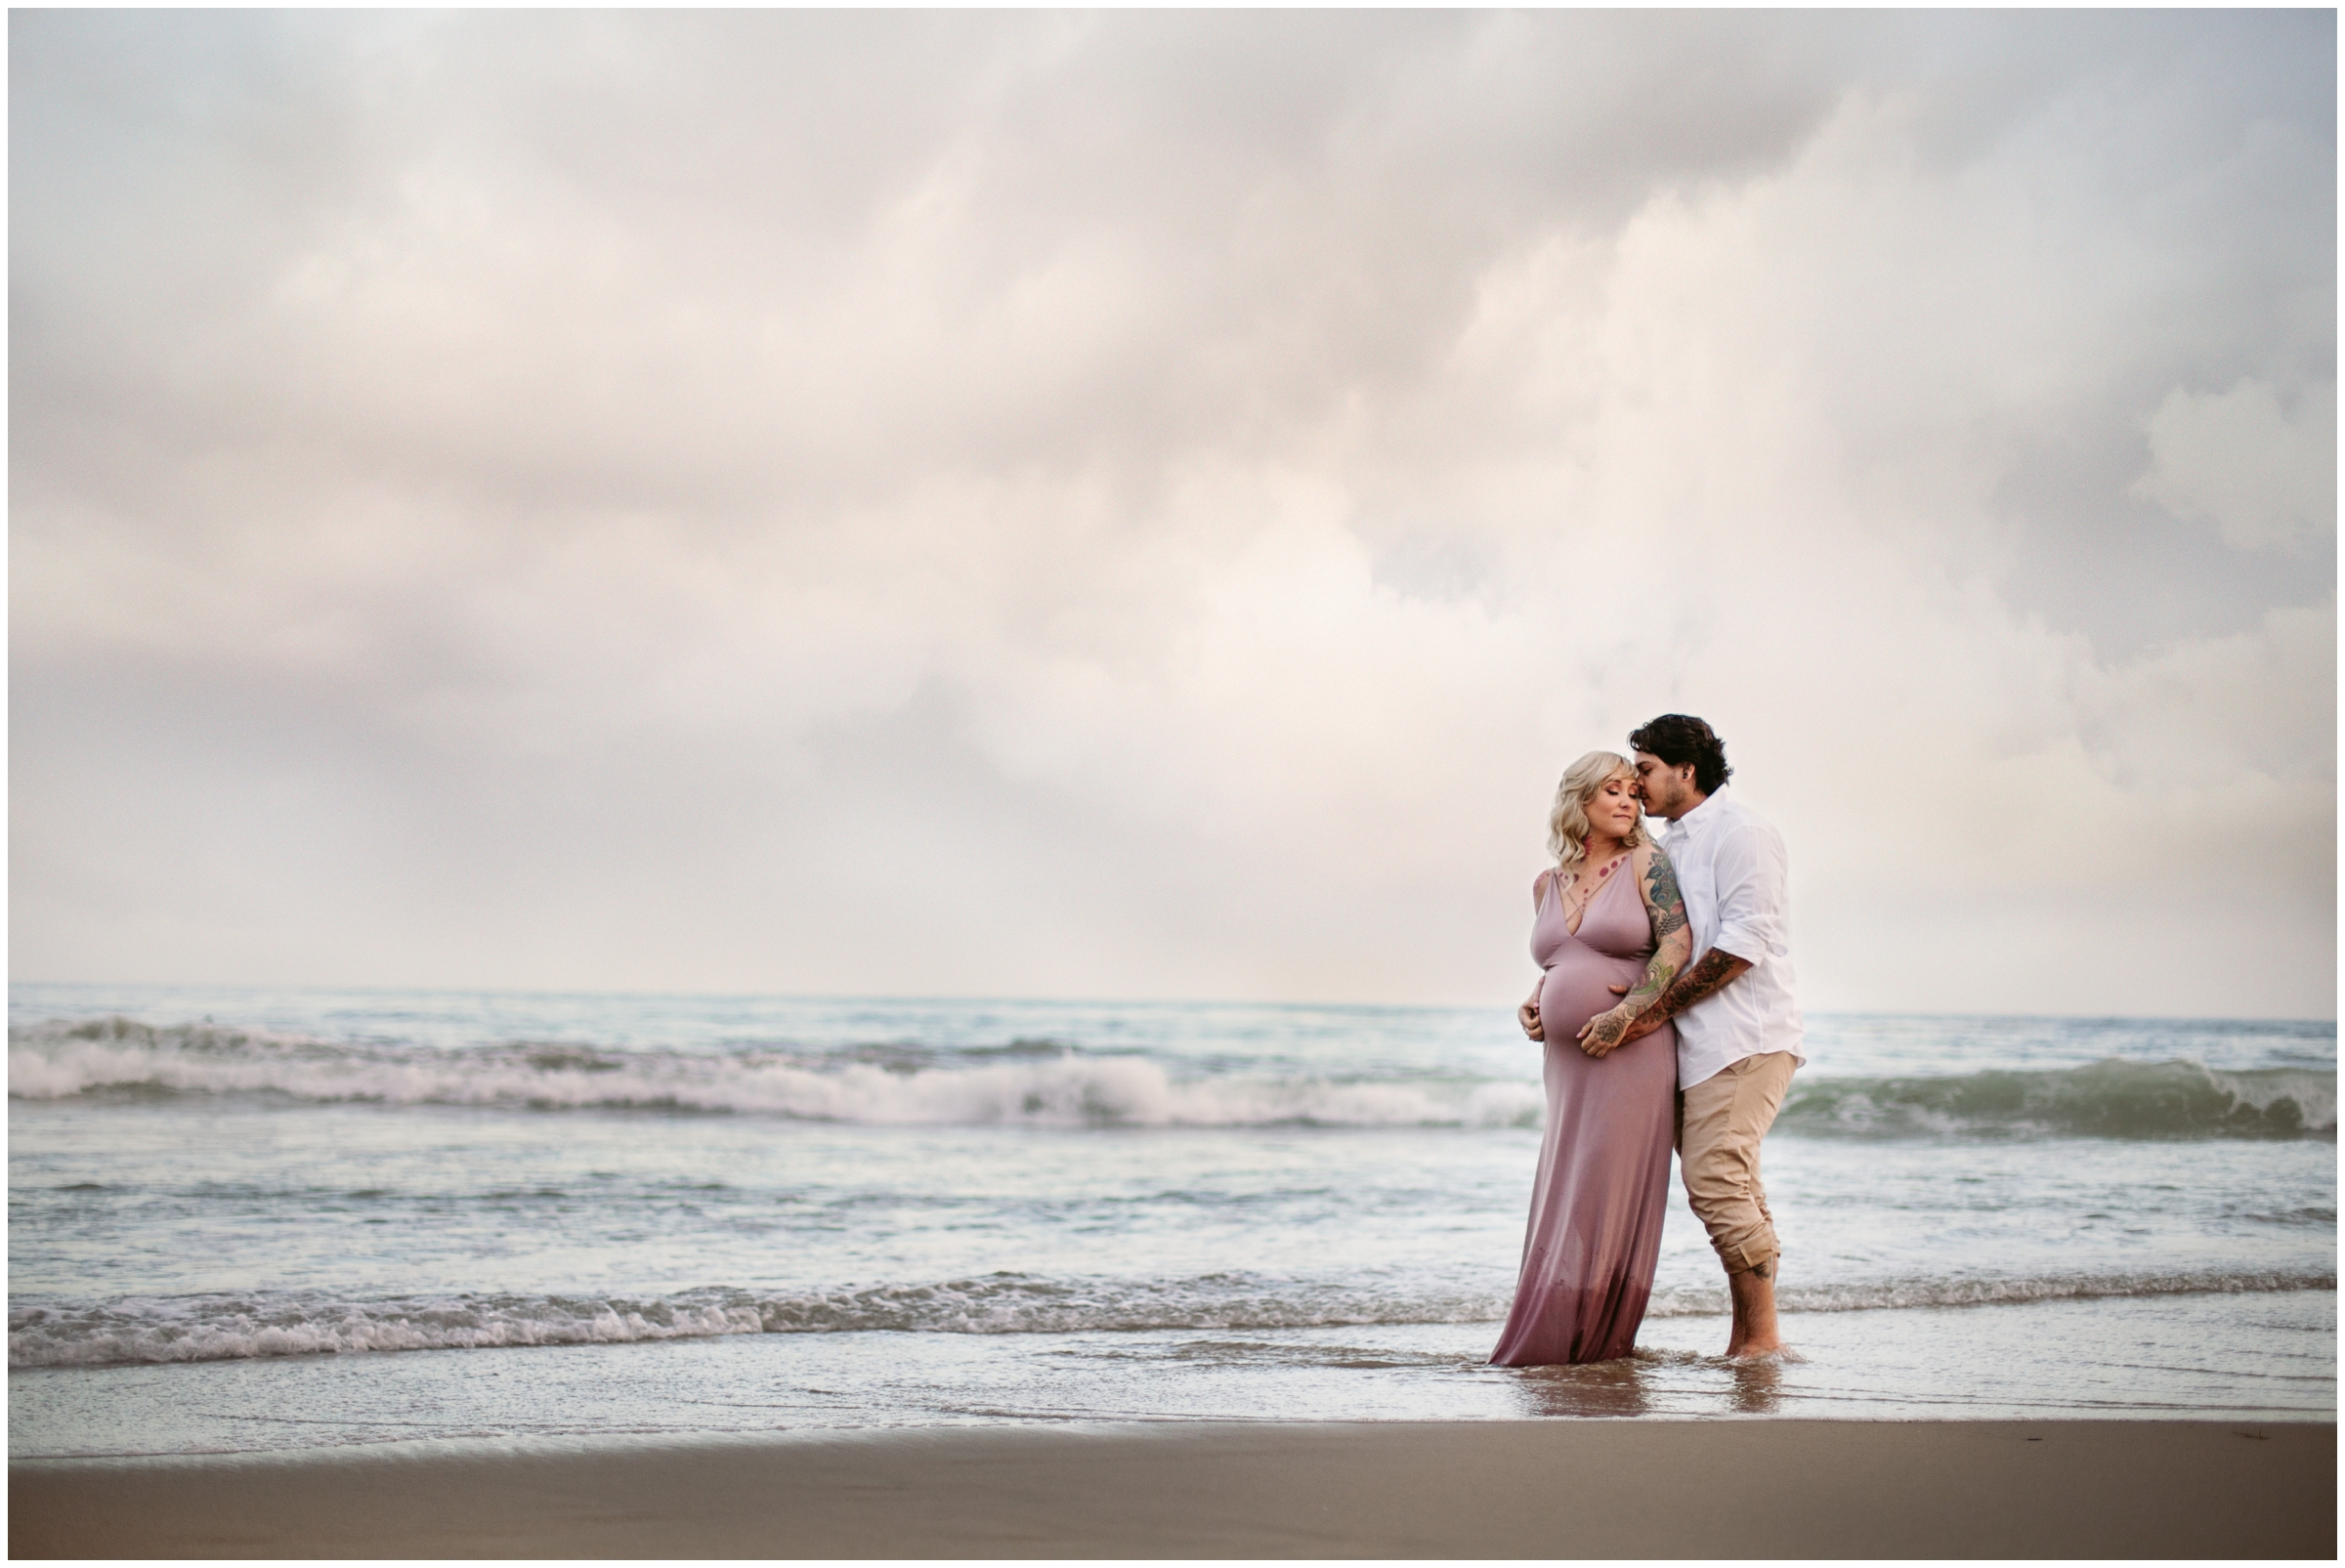 Moody Maternity Portraits on the beach by Just Maggie Photography - Los Angeles Maternity & Baby Photographer